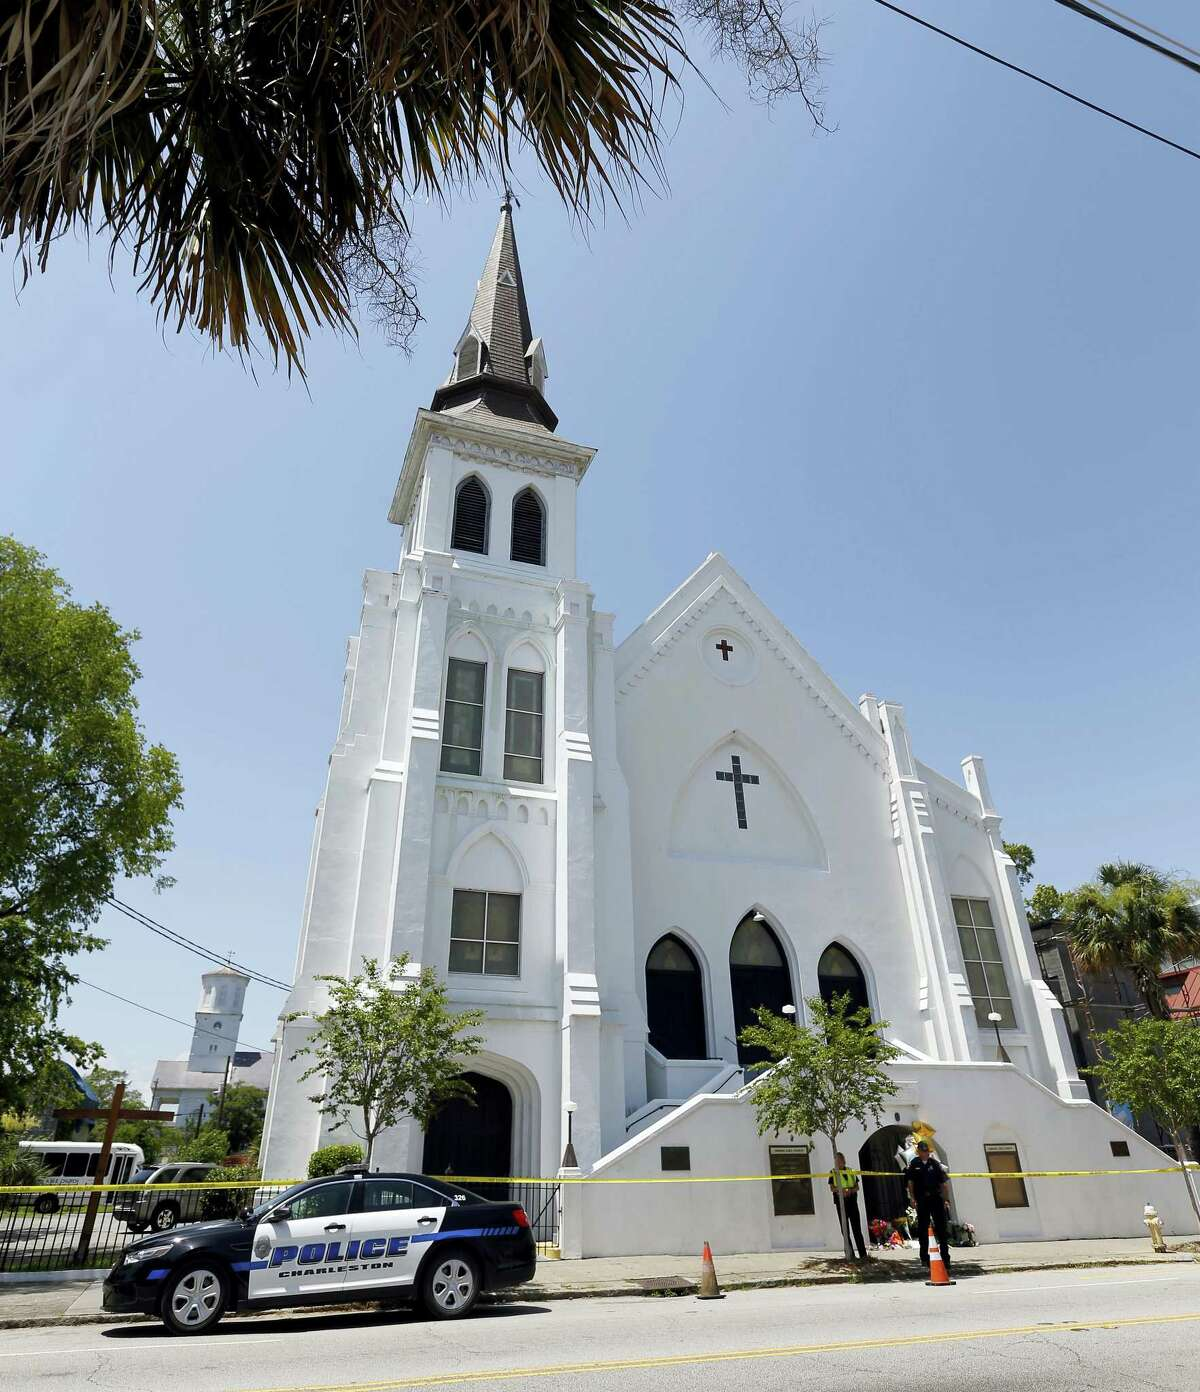 In this June 18, 2015, file photo, two Charleston police officers stand in front of the Emanuel AME Church in Charleston, S.C. The trial for Dylann Roof, a white man accused of killing nine black people at the church, started Wednesday, Dec. 7, 2016, at the federal courthouse in Charleston, SC.